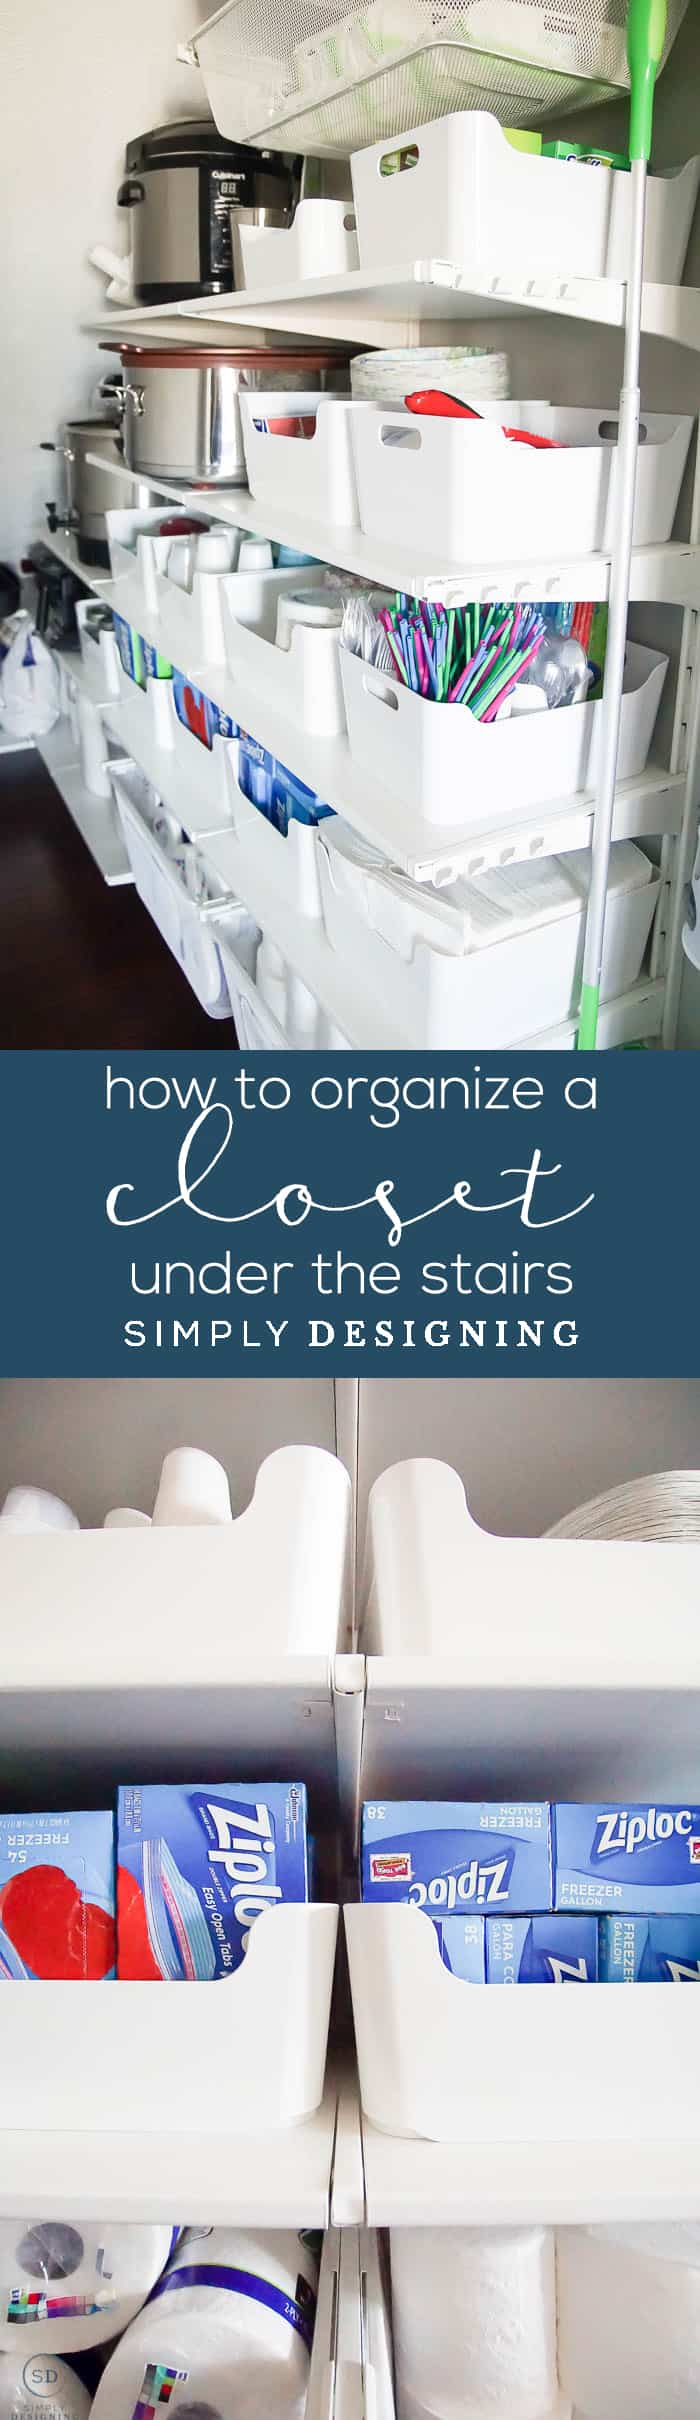 How to Organize a Closet Under the Stairs - Under Stairs Ideas - Under Stairs Closet Storage Plans